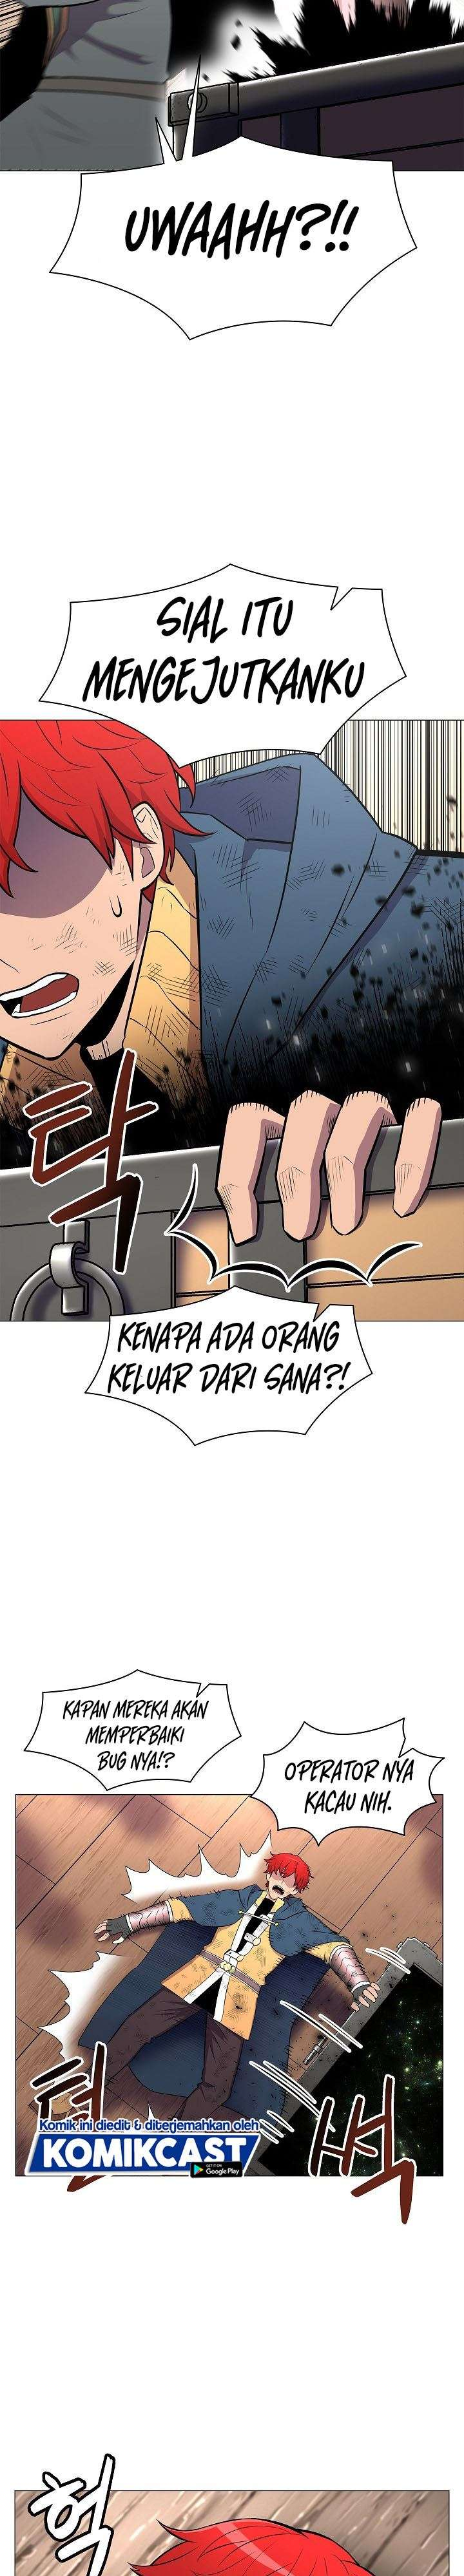 Updater Chapter 12